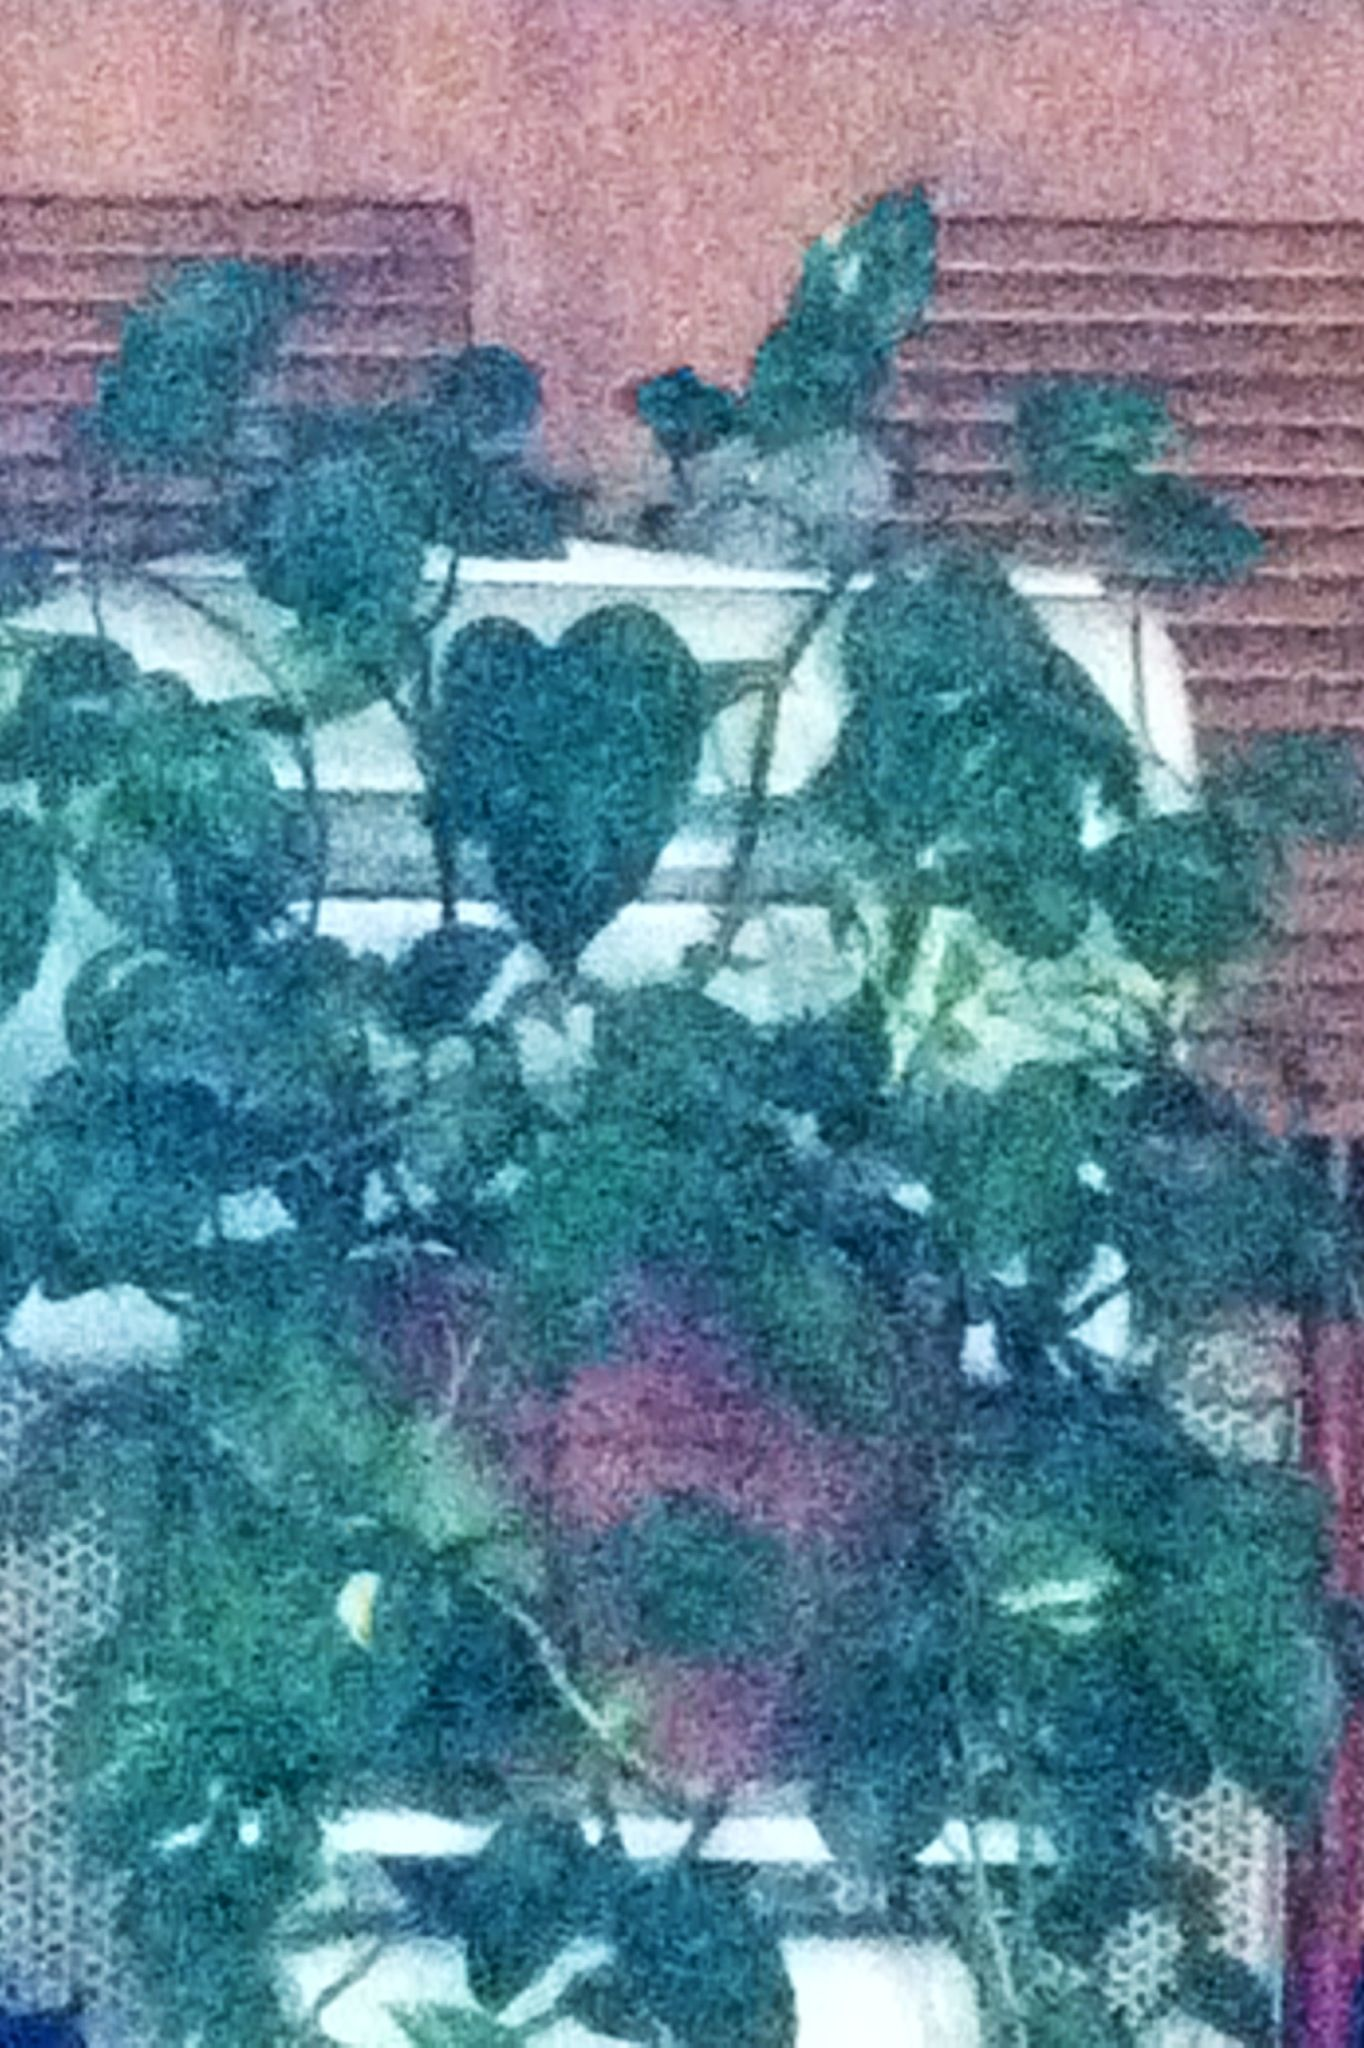 This plant has been grown from a baby. It sits on an antique deli meat scale. Smack dab in the center grows this one heart shape!